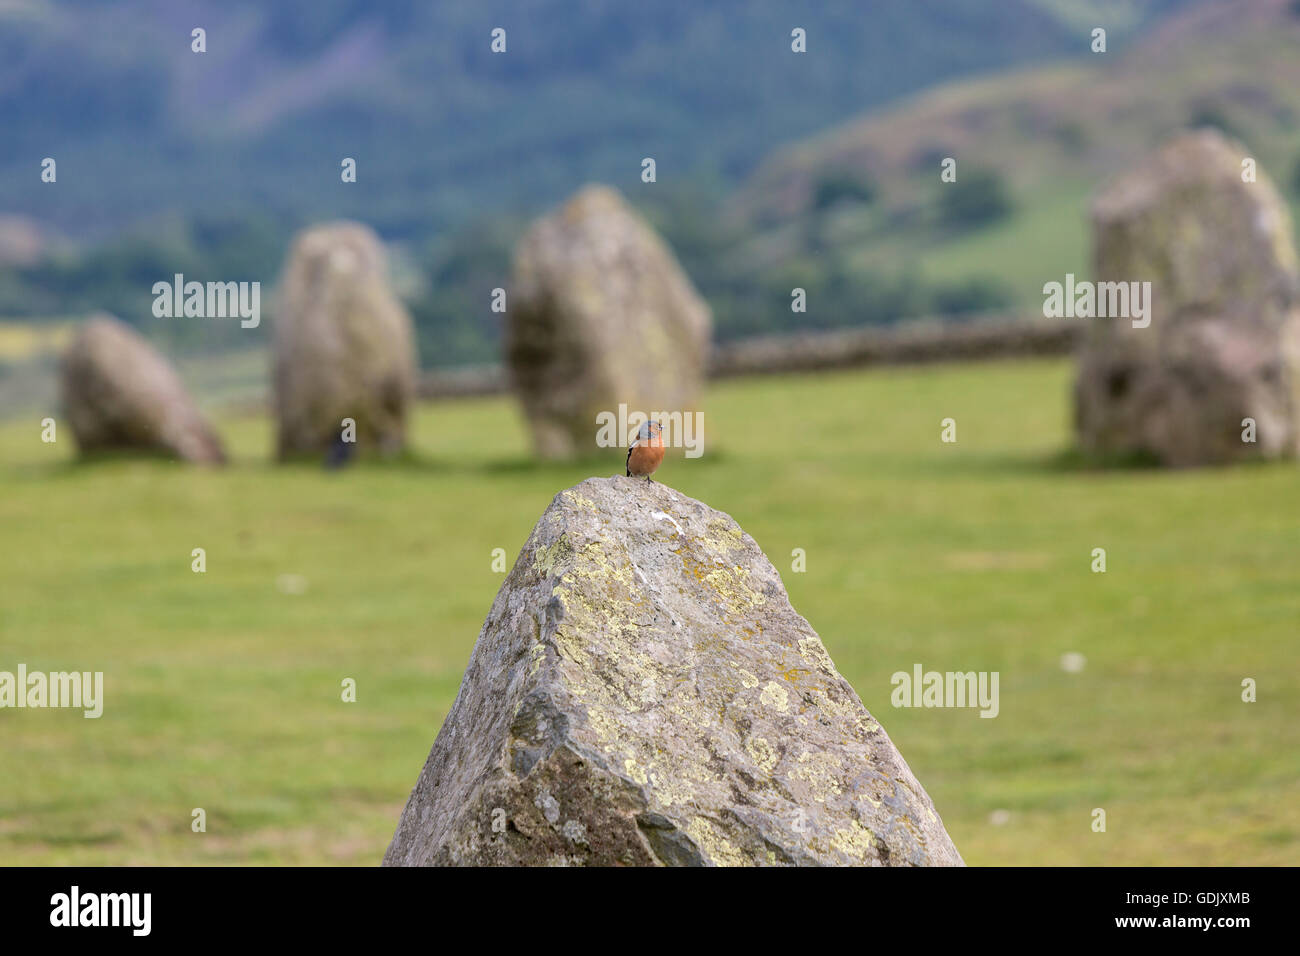 Common chaffinch, Fringilla coelebs, on top on one stone in Castlerigg stone circle, Keswick, Cumbria, North West - Stock Image